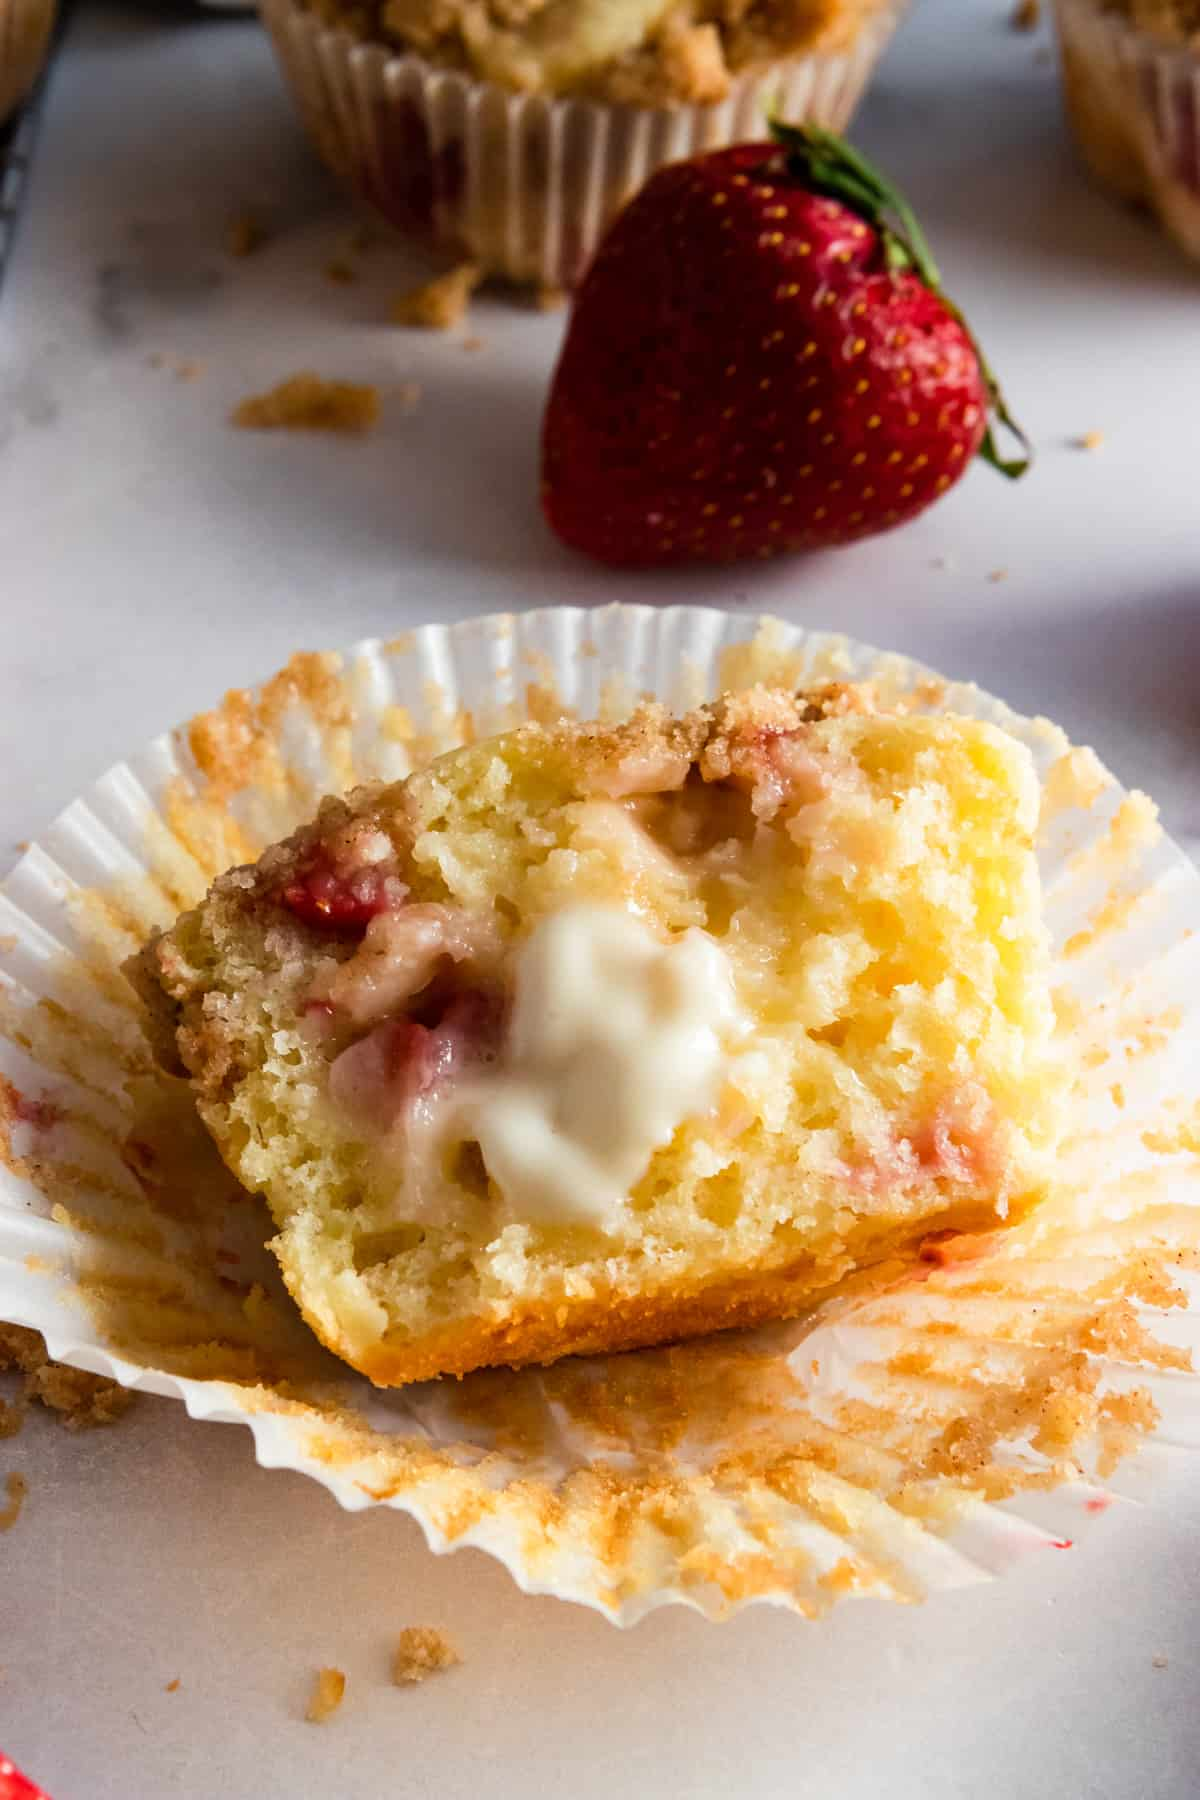 Strawberry muffin cut in half with melted butter on top.